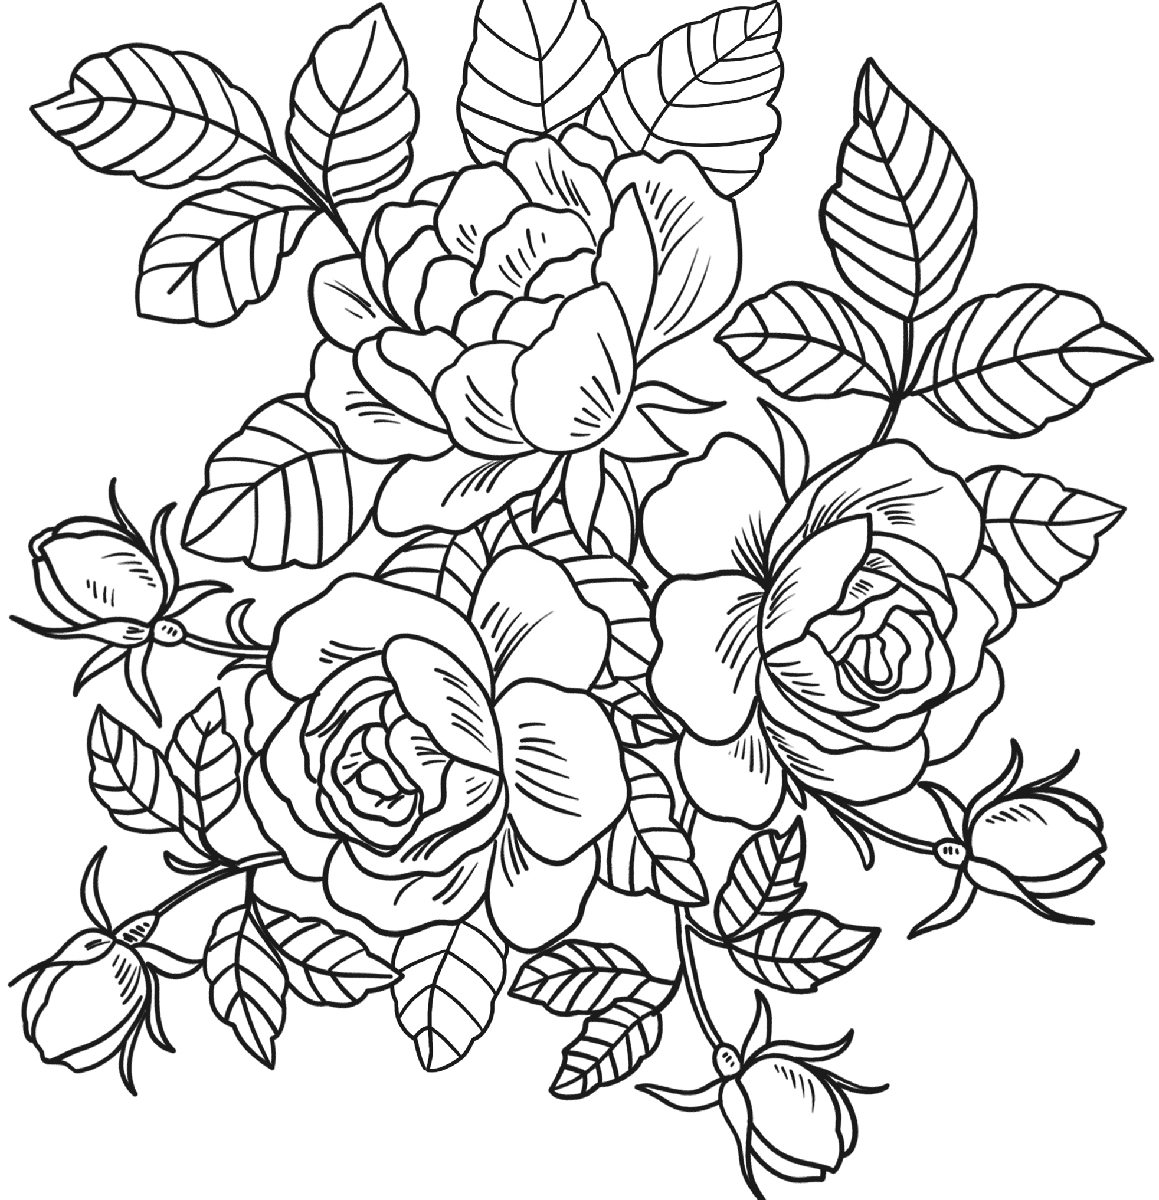 1159x1200 Coloring Pages Of Cherry Blossom Trees Orange Spring Blossoms